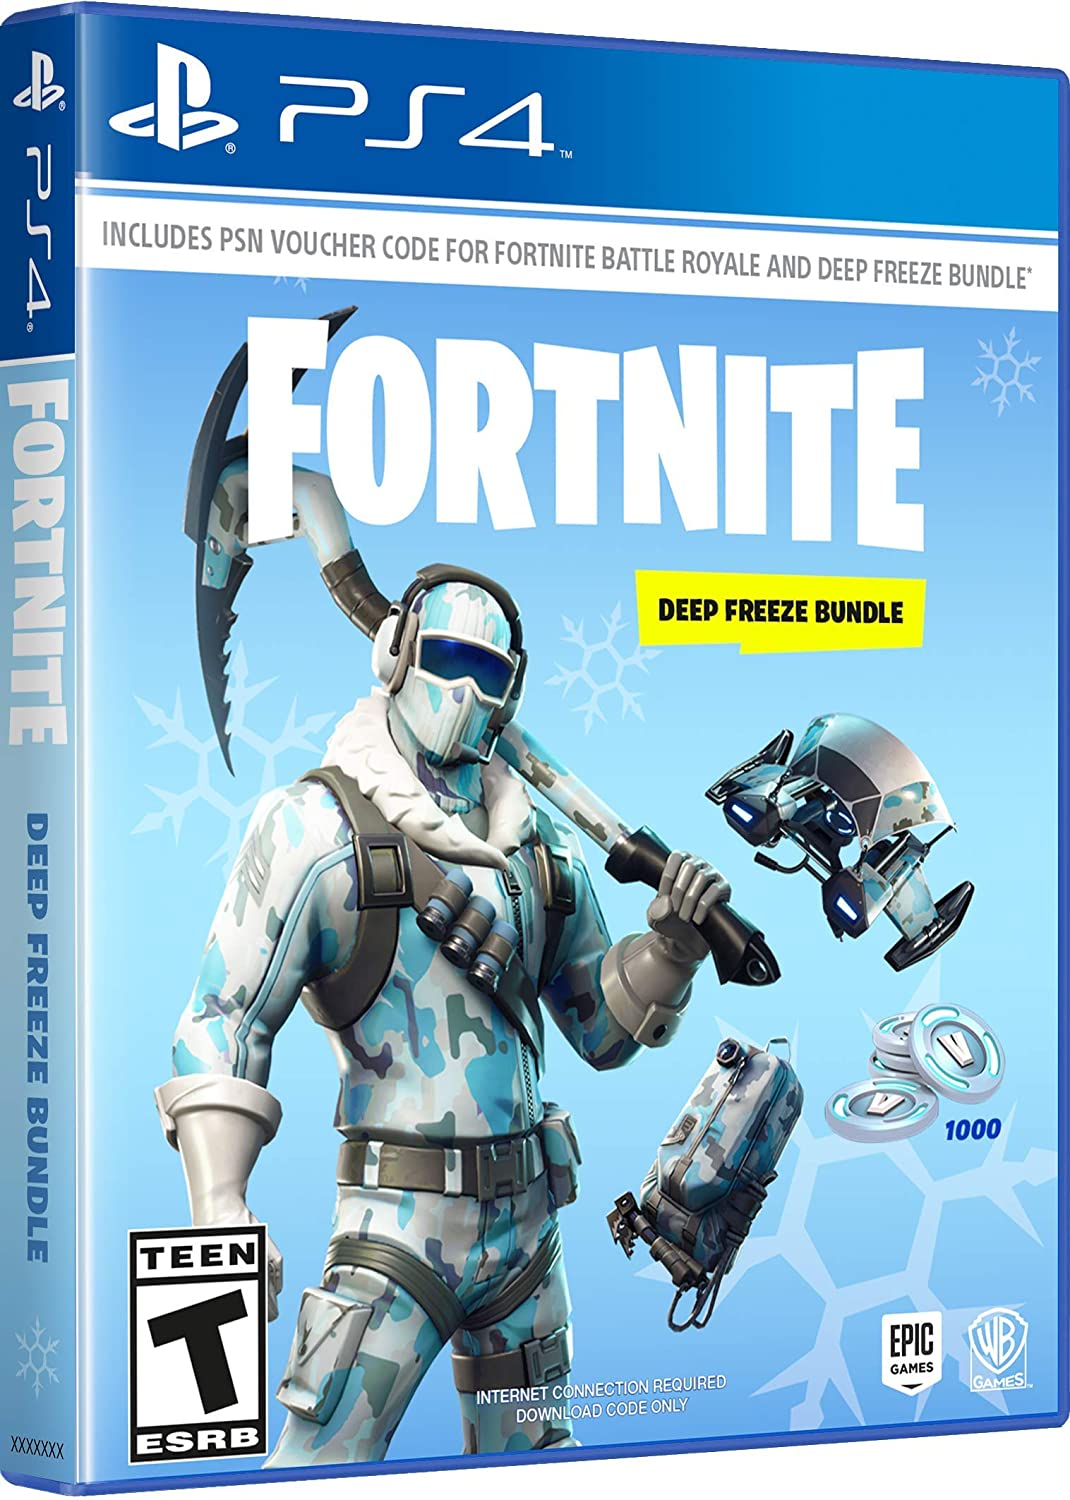 amazon com warner bros fortnite deep freeze bundle nintendo switch whv games video games - fortnite deluxe edition pc key